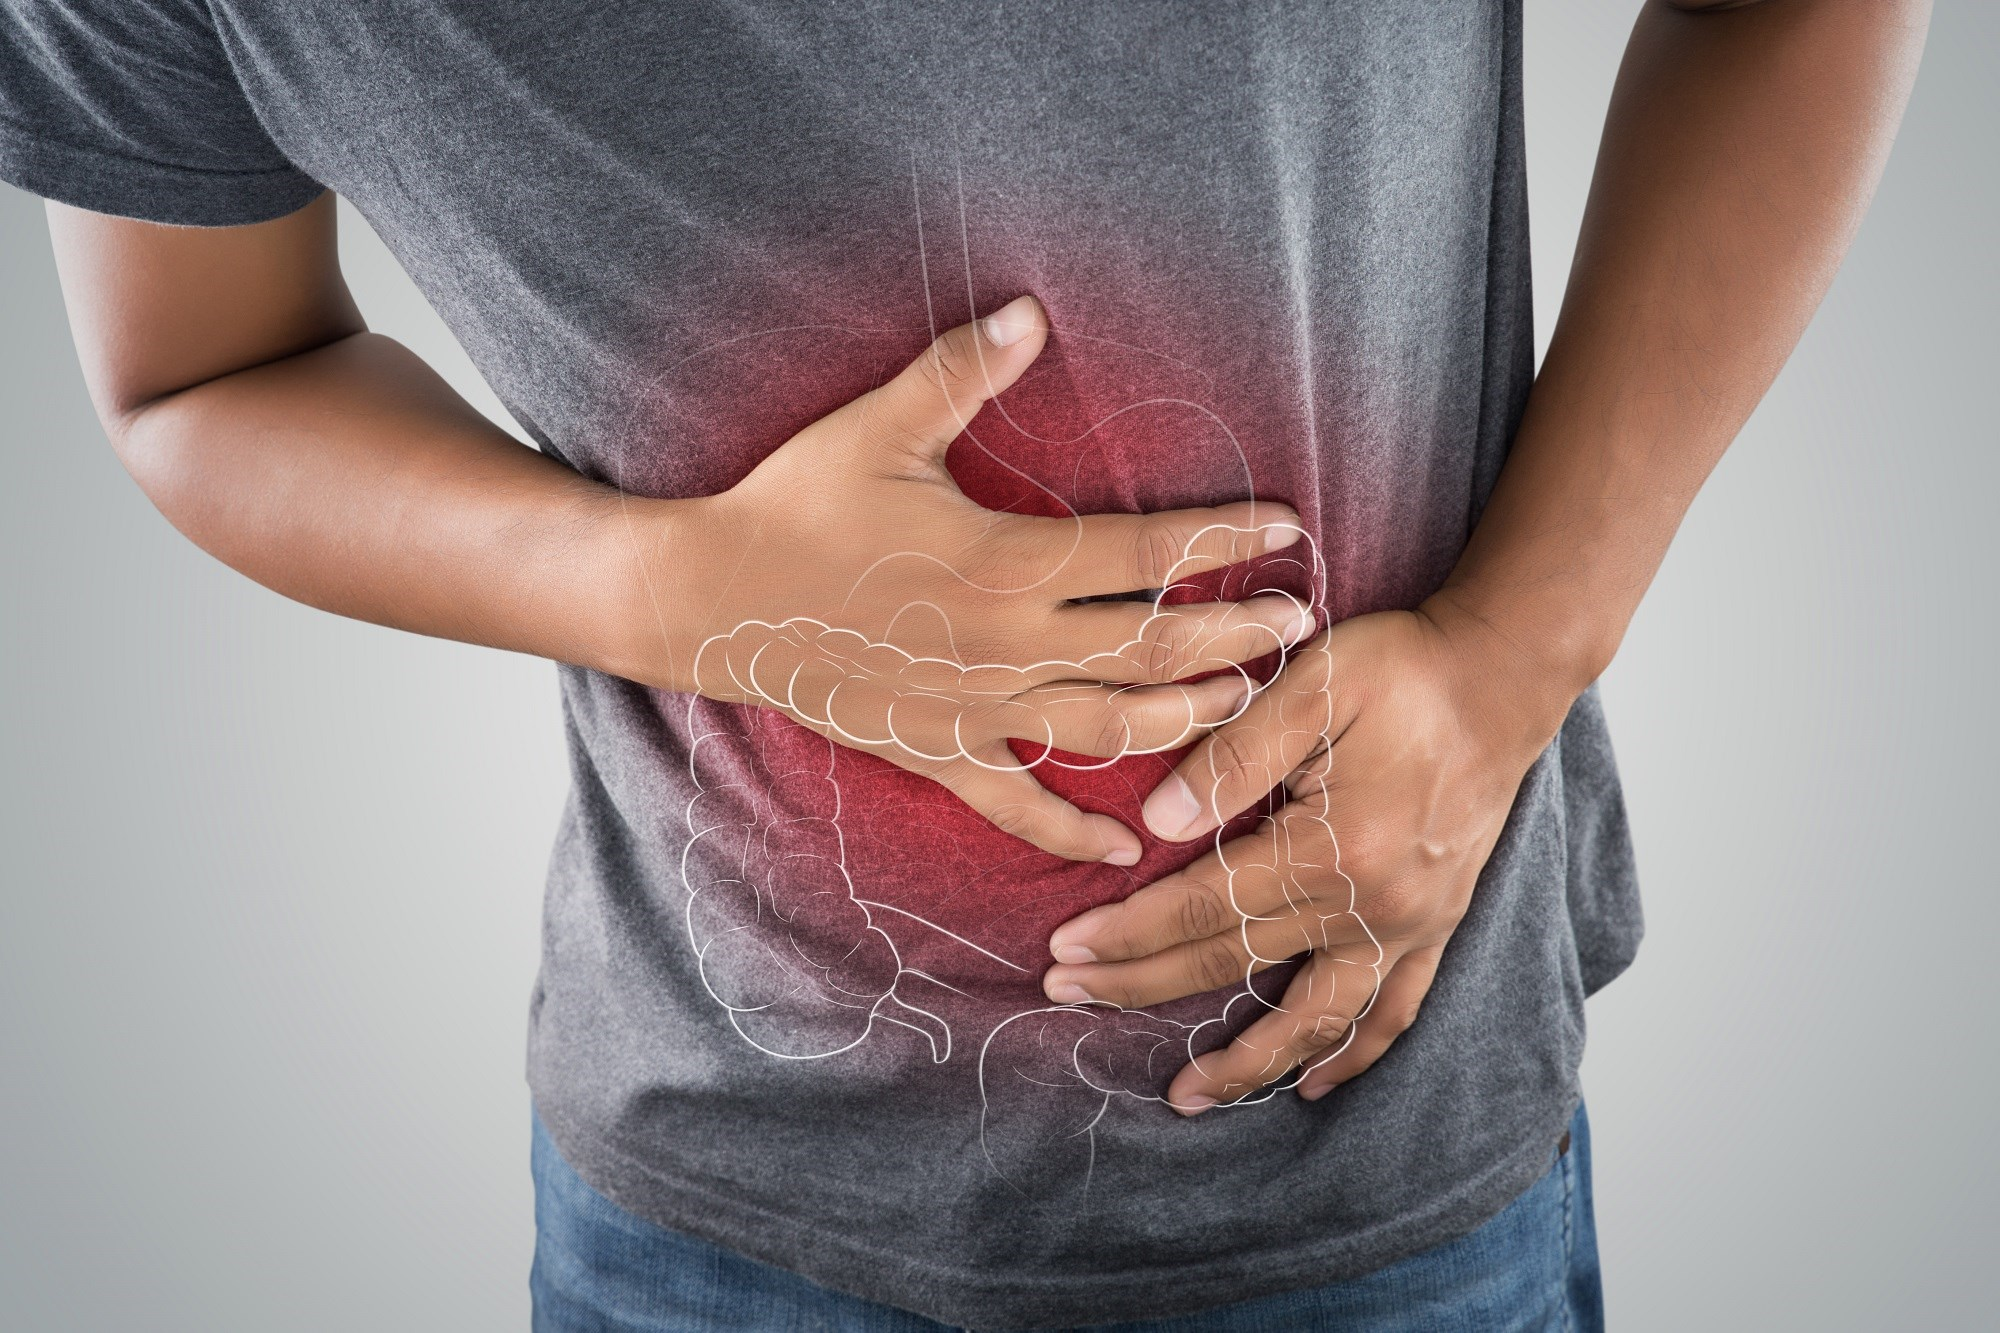 McCune-Albright Syndrome Linked to Broad Range of Gastrointestinal Pathologies